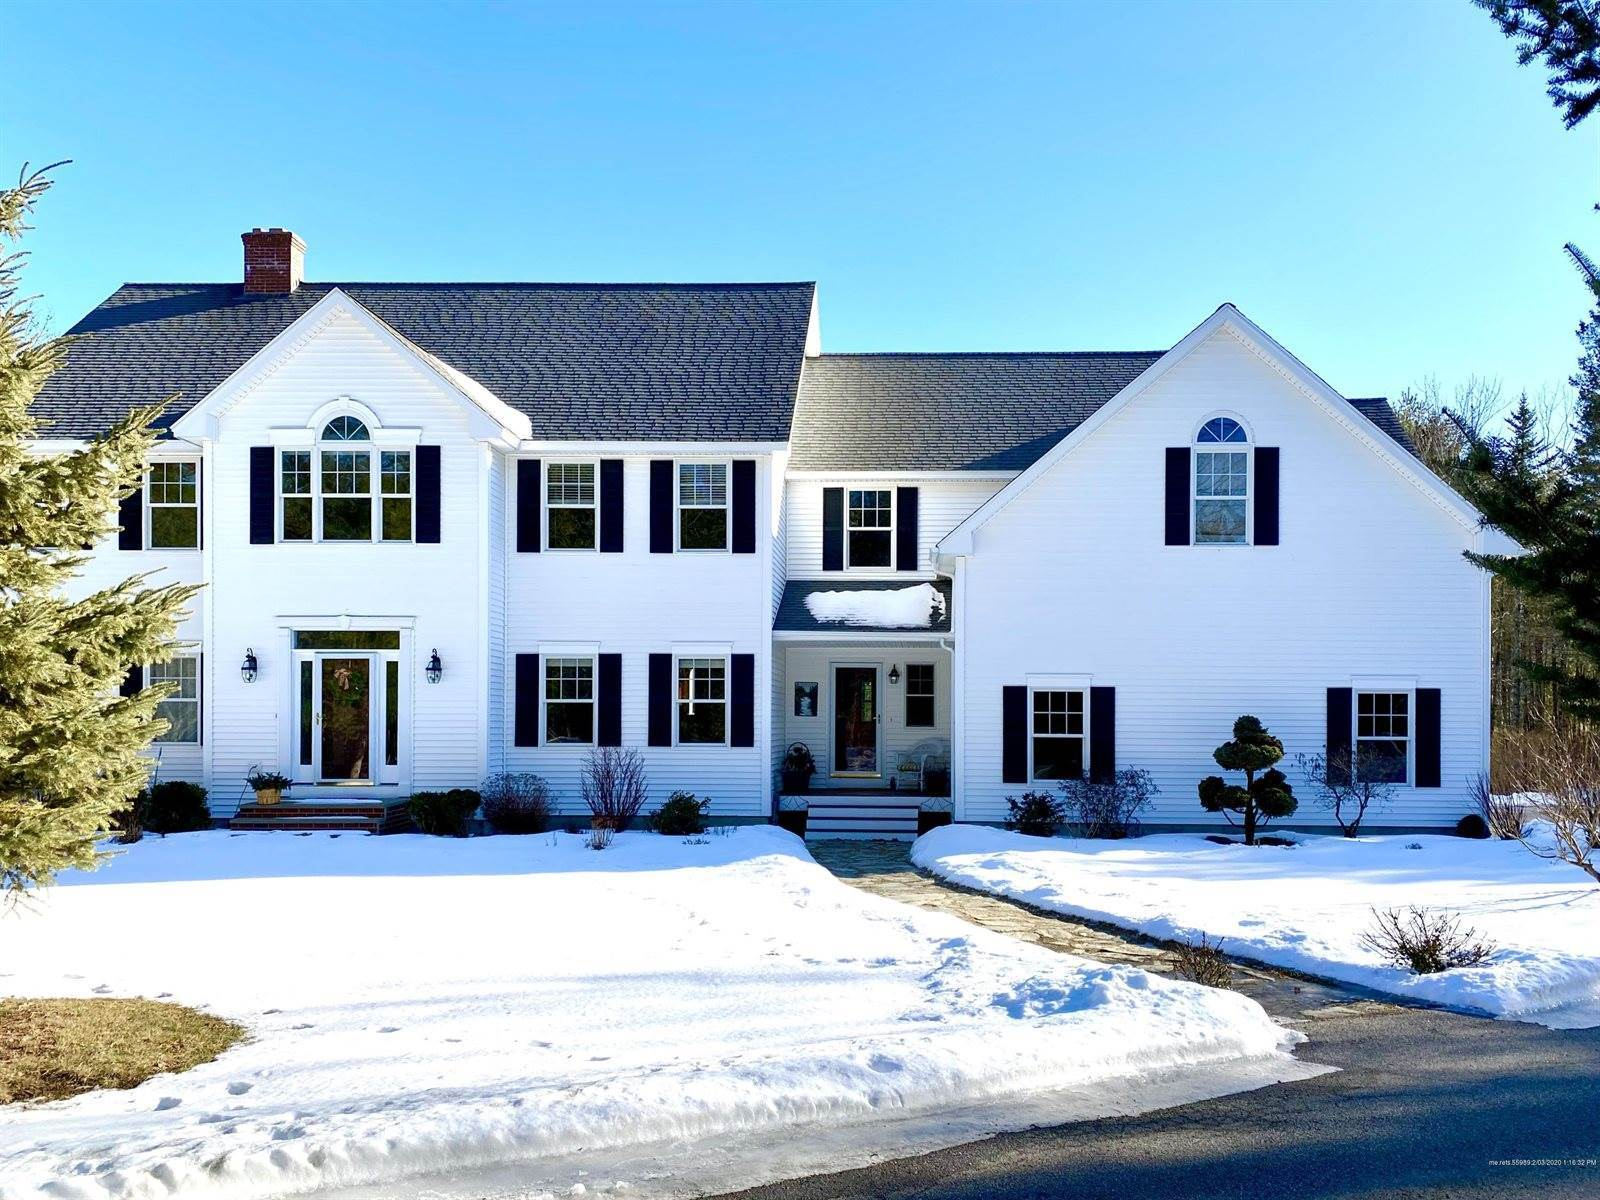 49 Whitetail Way, Bangor, ME 04401